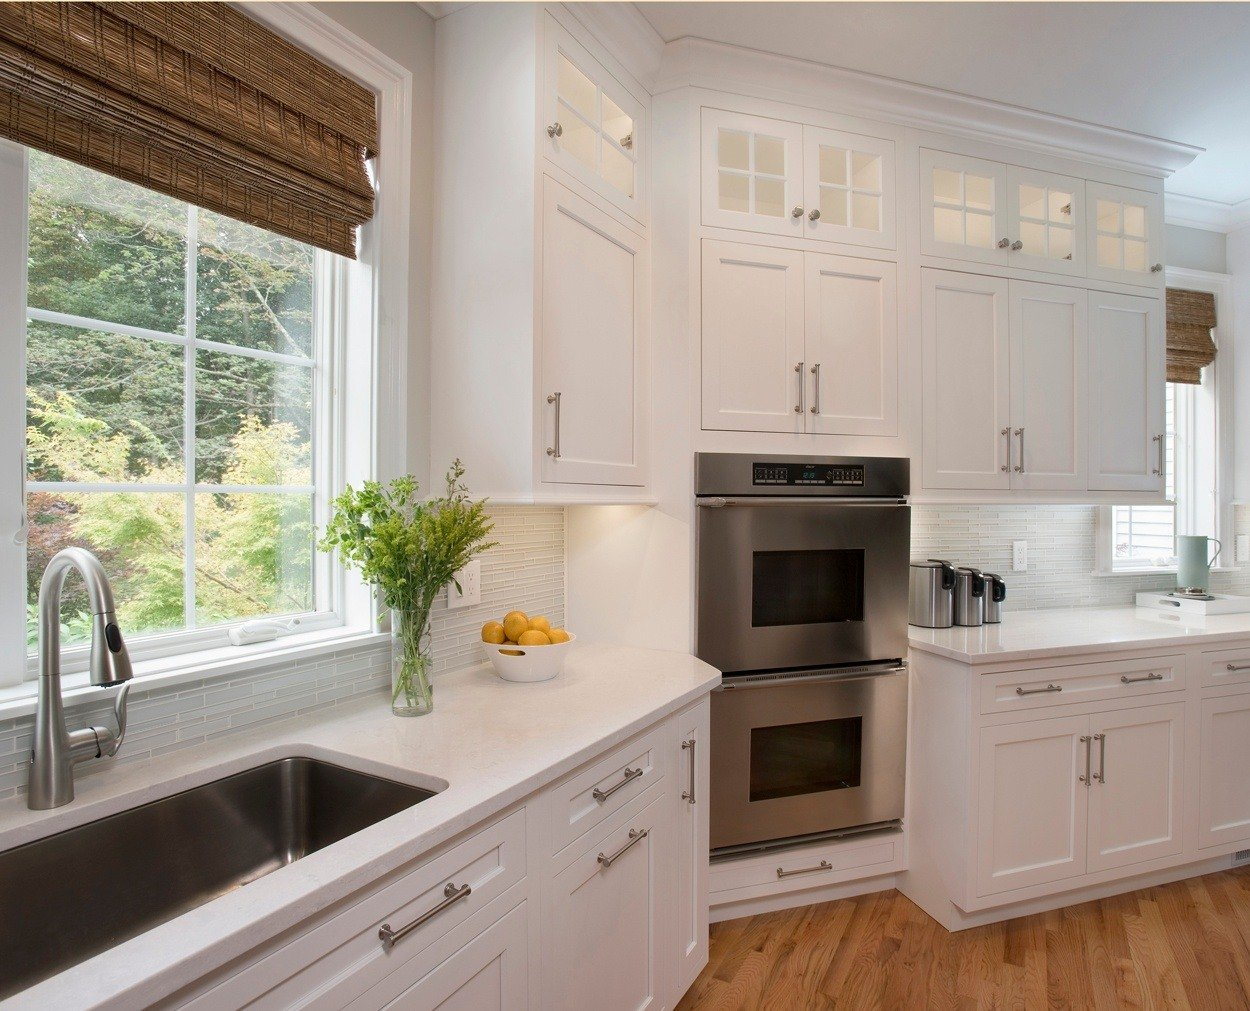 Corner cabinet houses double oven, with large sink under window.